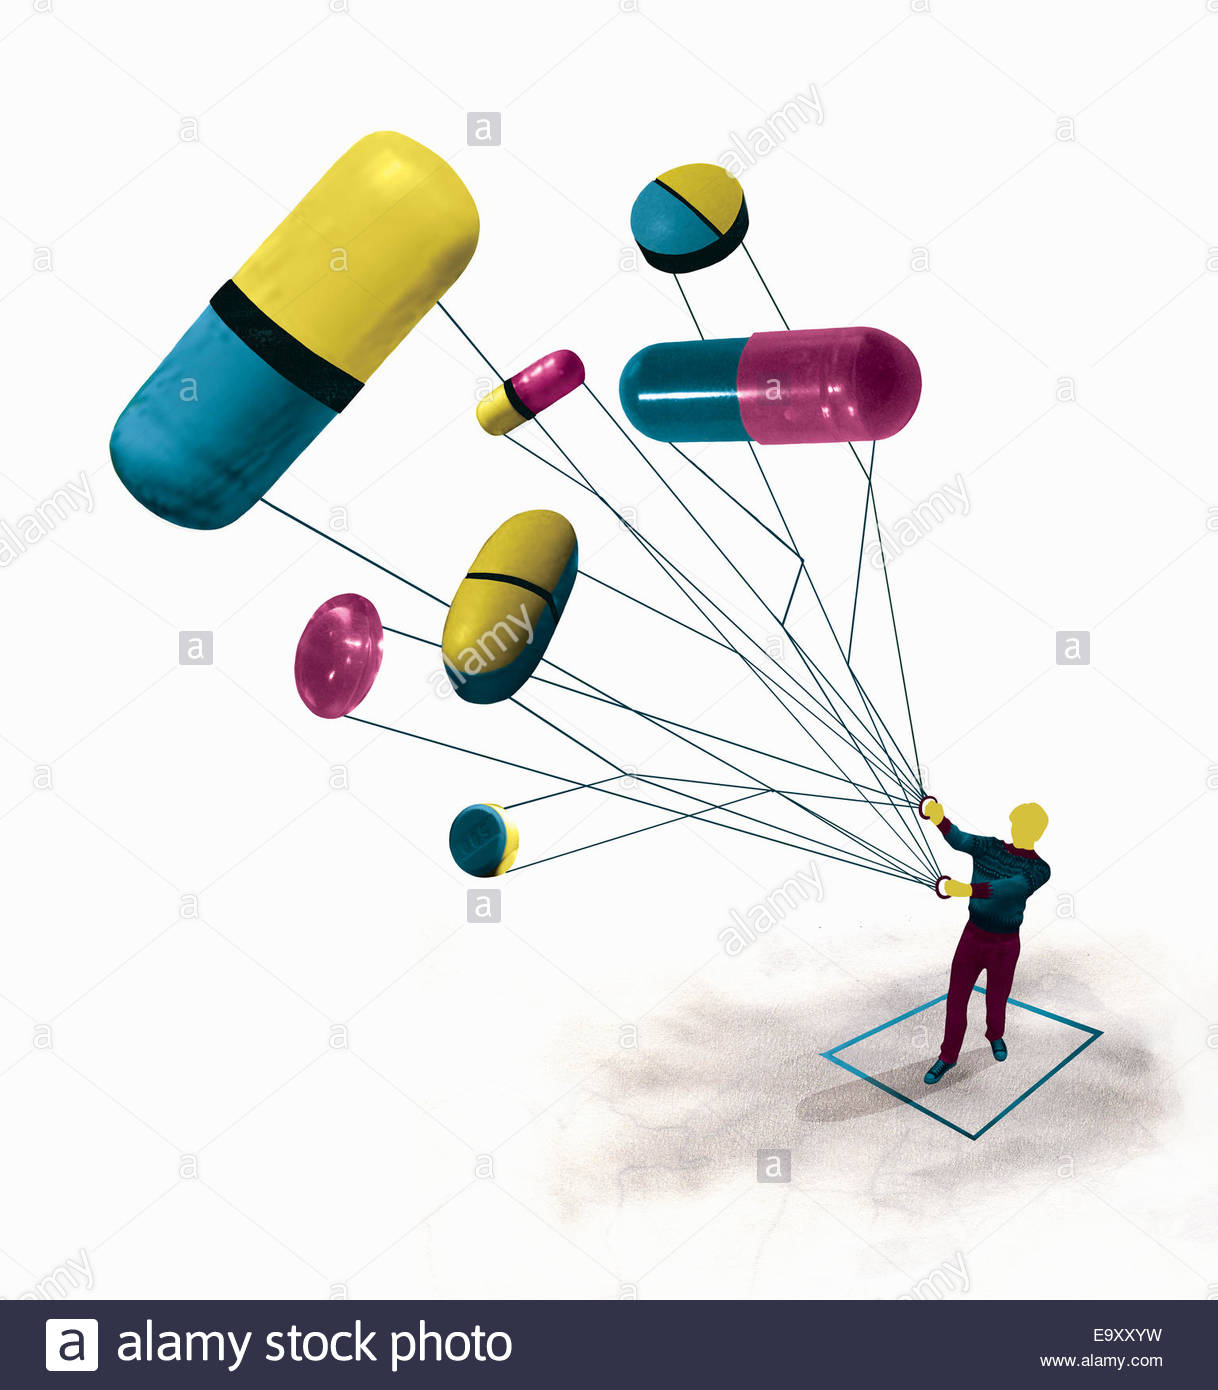 Man flying pills and medicine capsules as kite - Stock Image